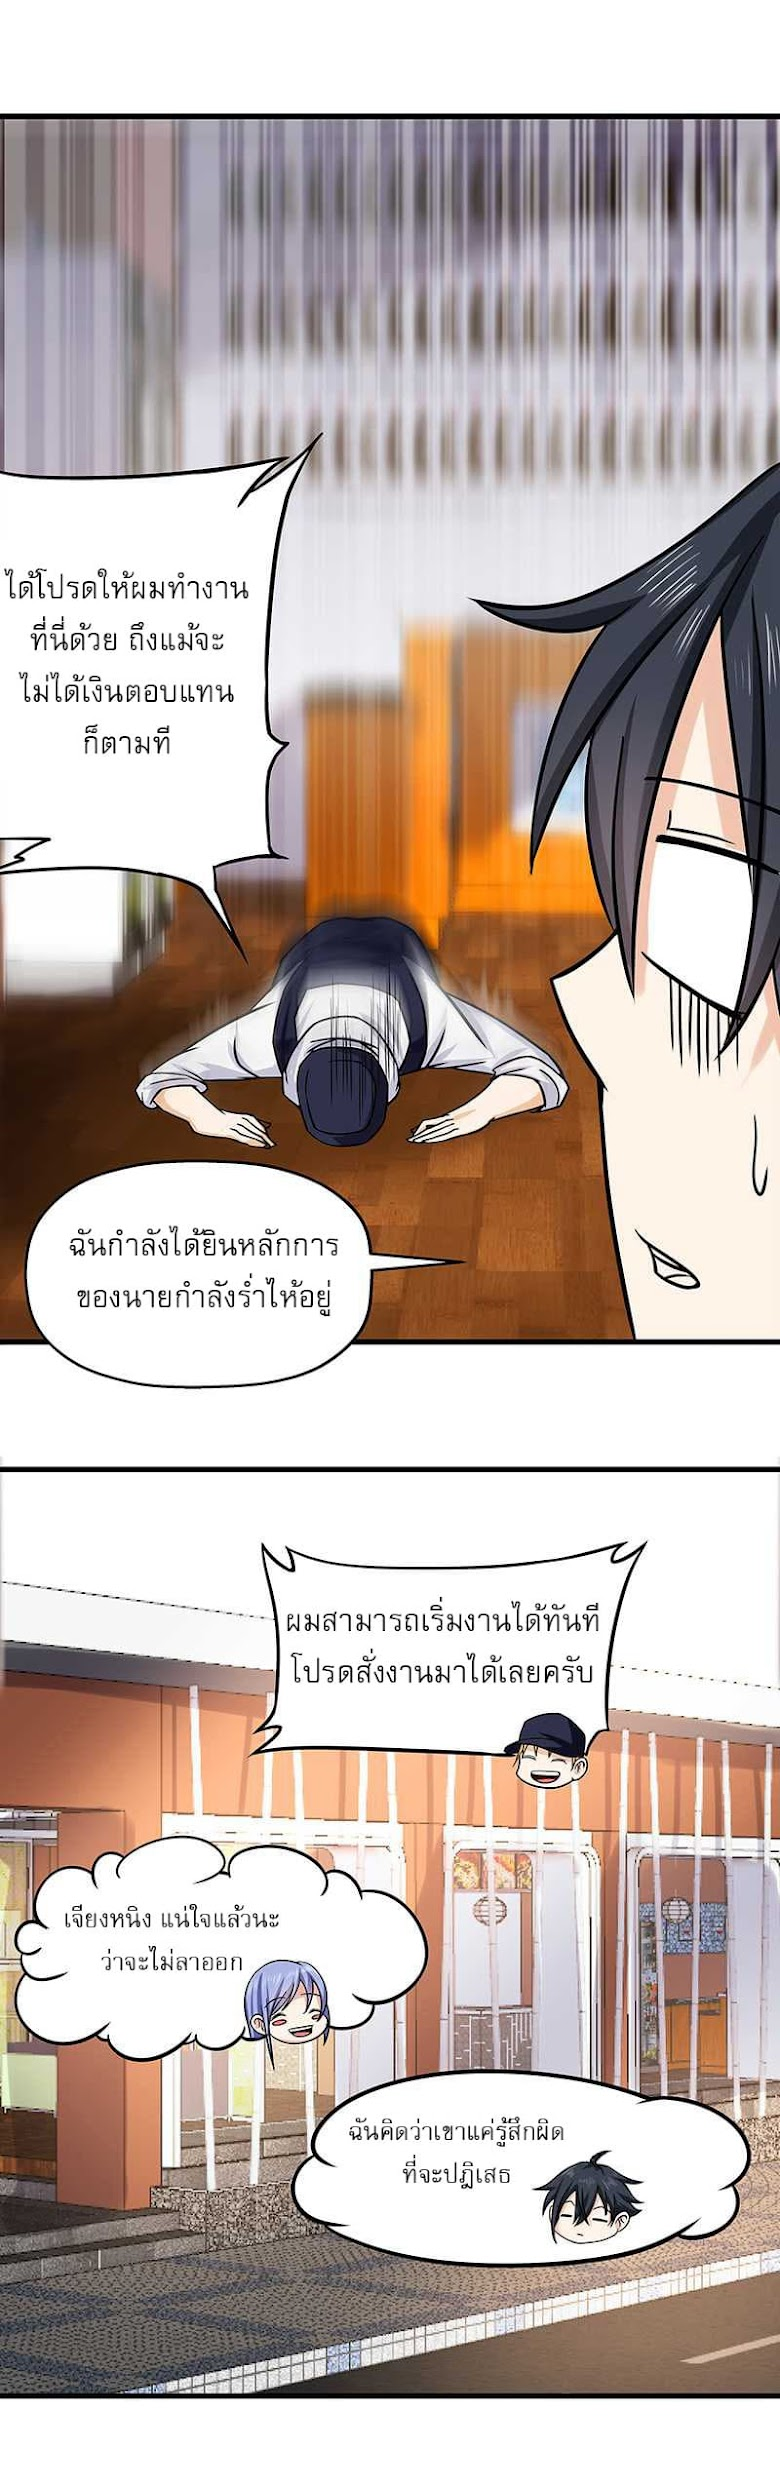 First Rate Master - หน้า 26